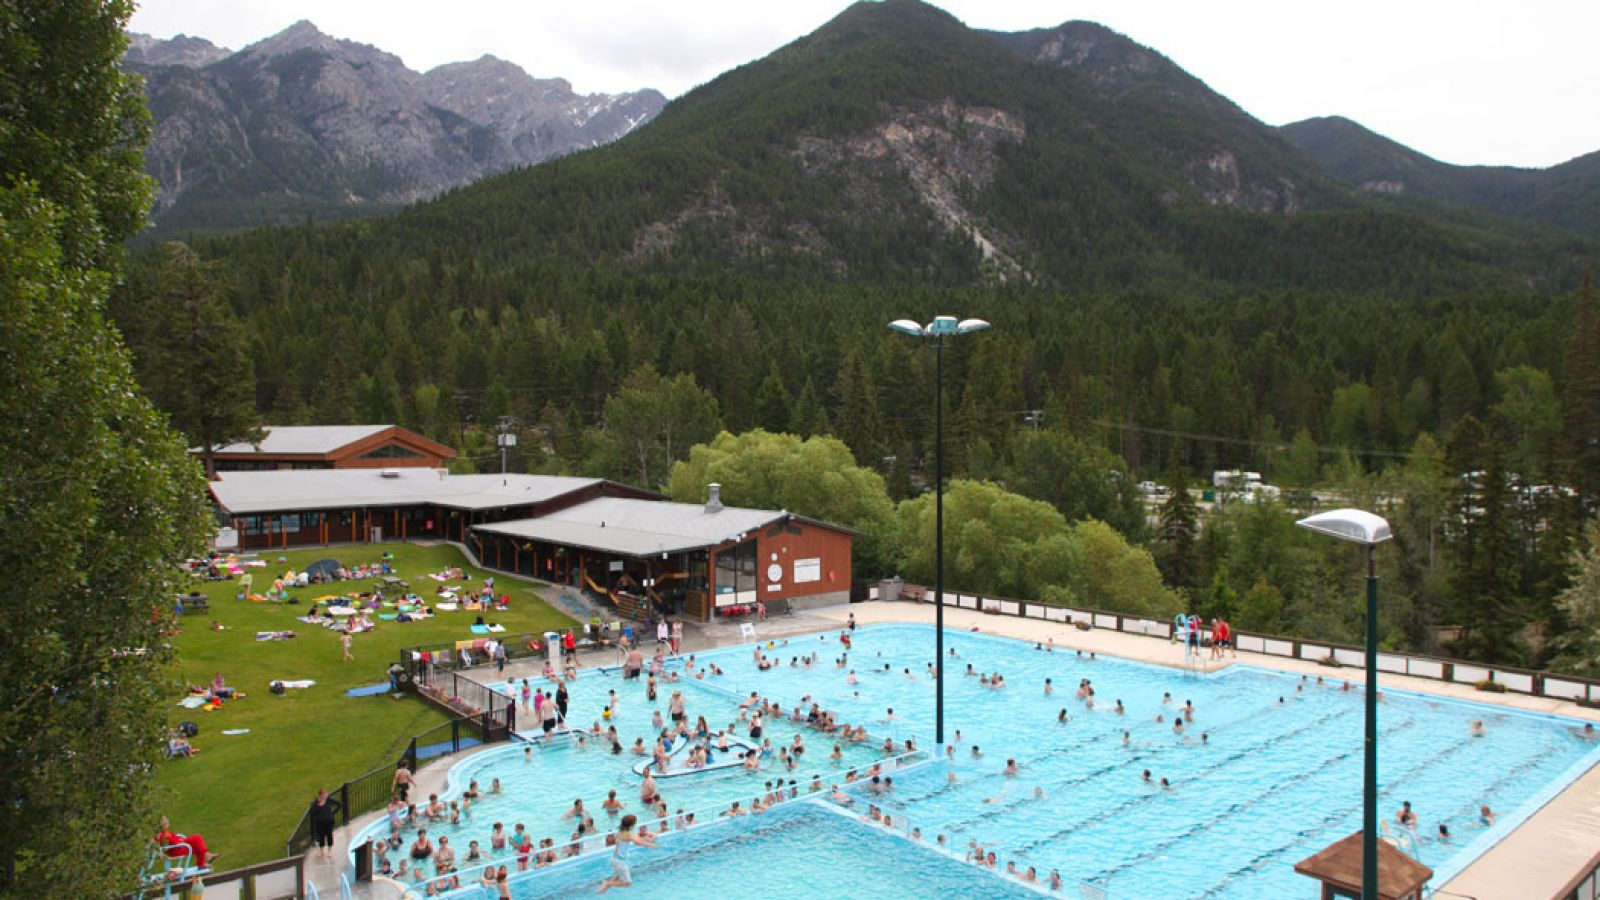 The wonderful Fairmont Hot Springs mineral pools.